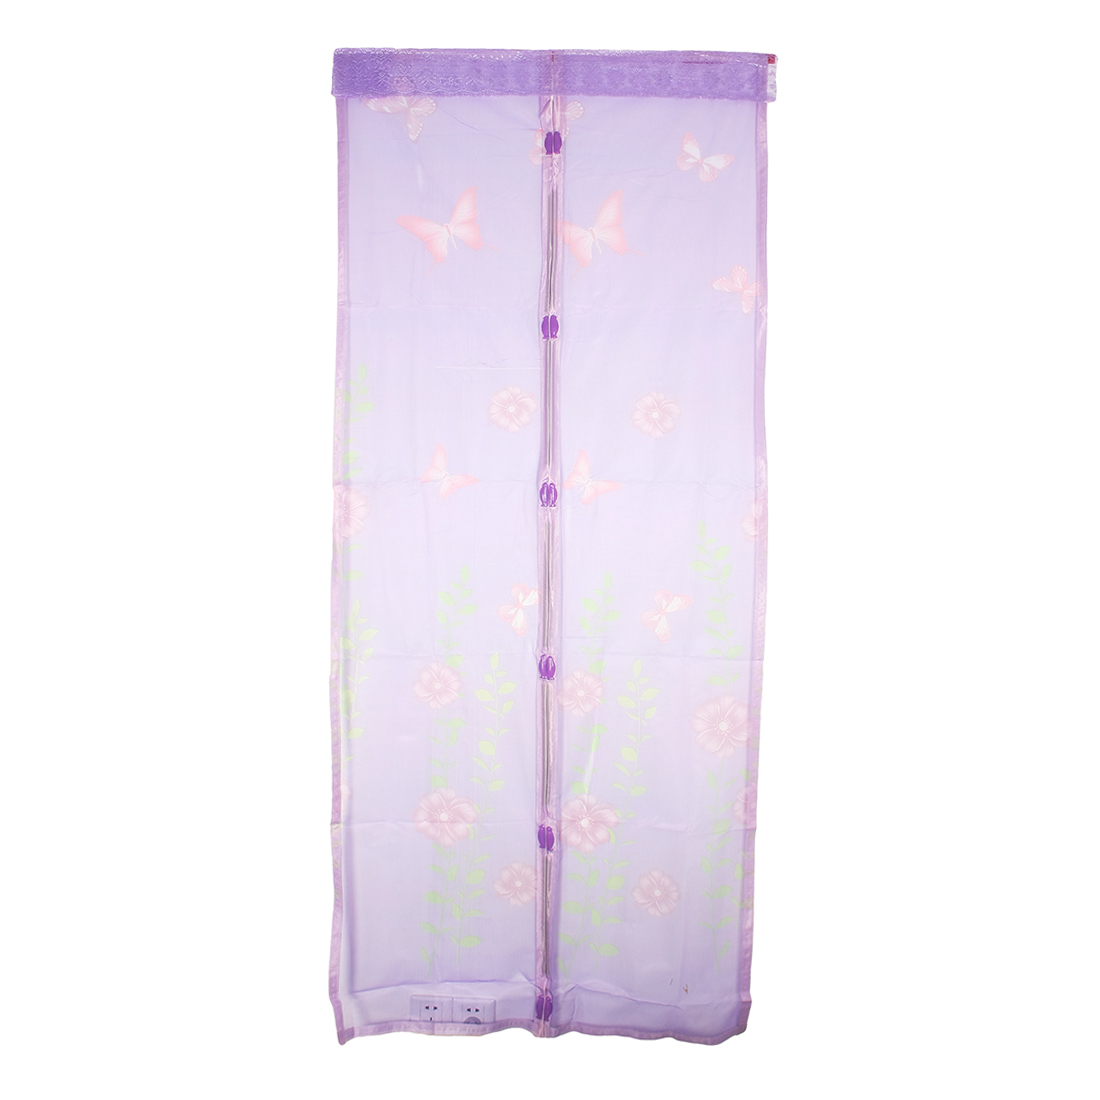 Flower Anti Mosquito Netting Mesh Magnetic Screen Door 90 x 210cm Bright Purple